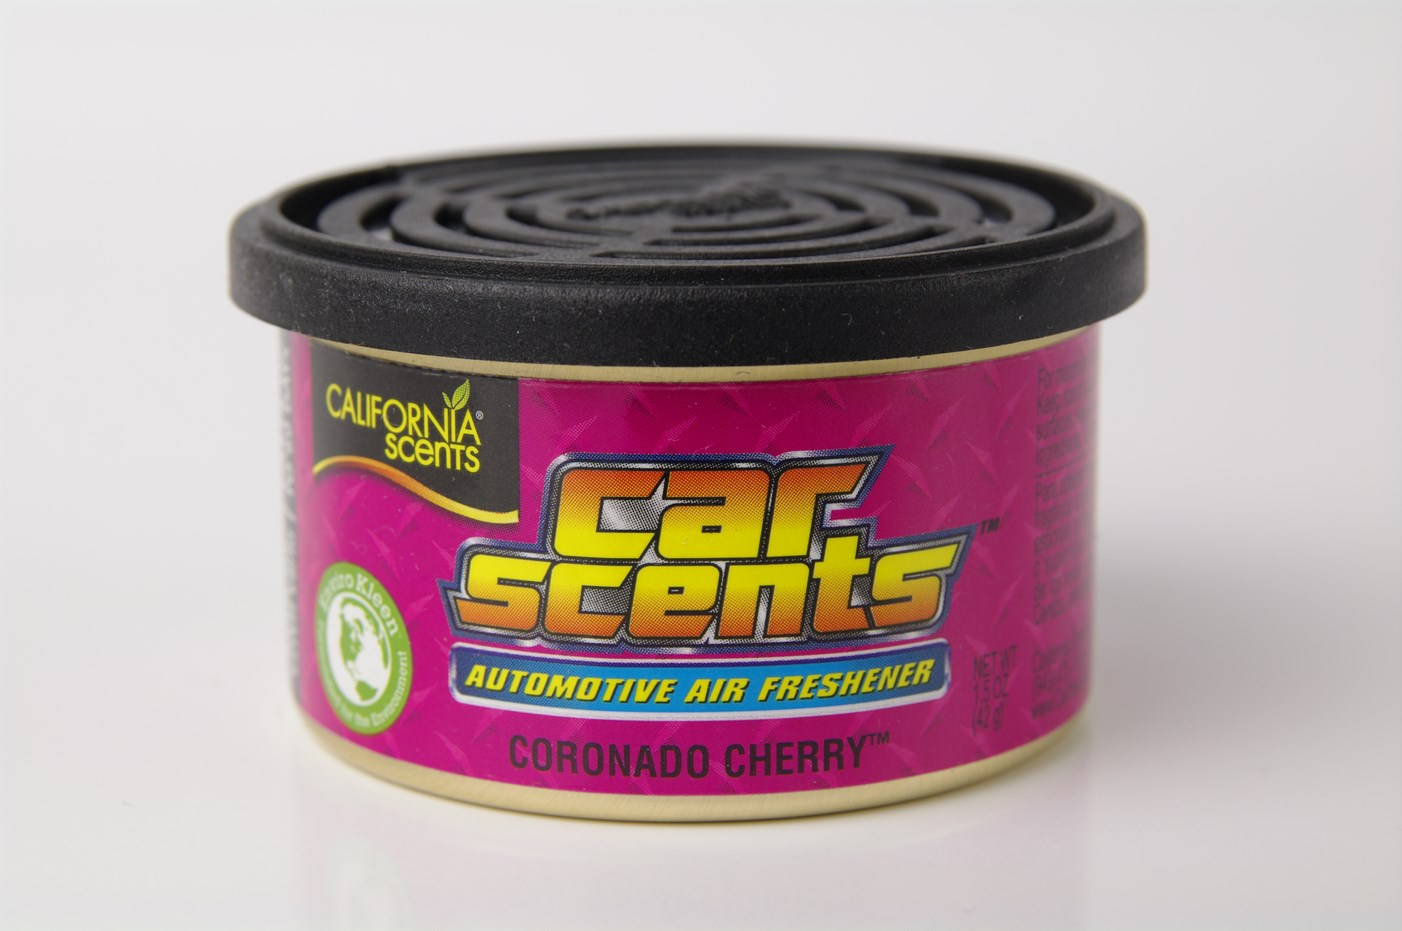 California Scents Car Scents - Višeň (Coronado Cherry)  42 g